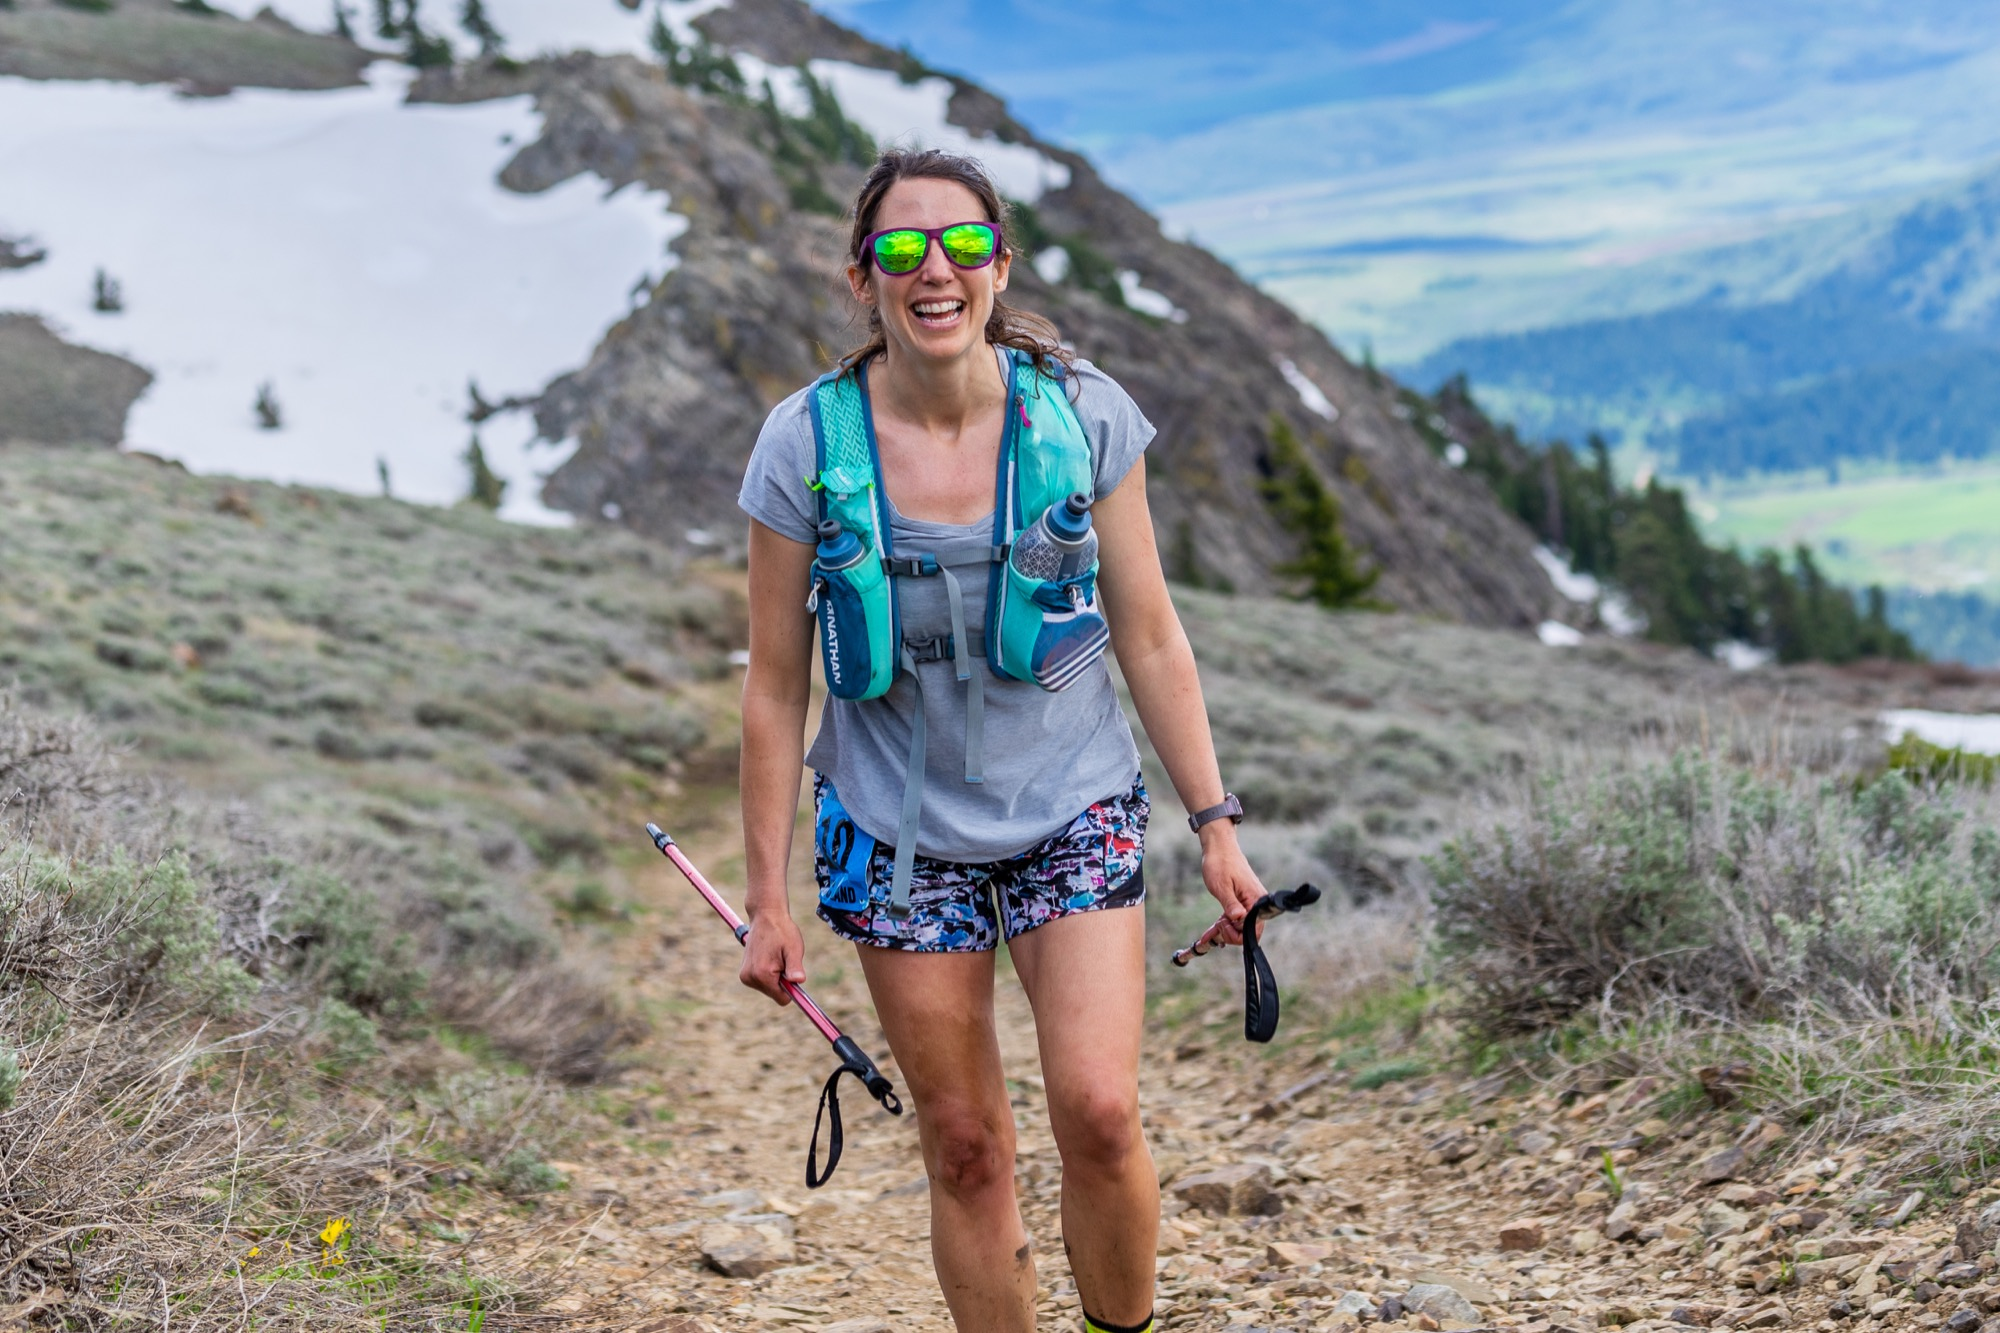 Brandon runner Stacy Dittmer is shown at the Scout Mountain Ultra south of Pocatello, Idaho on June 1, 2019. She won the female division of the 100-mile run in 28 hours 49 minutes 59 seconds.